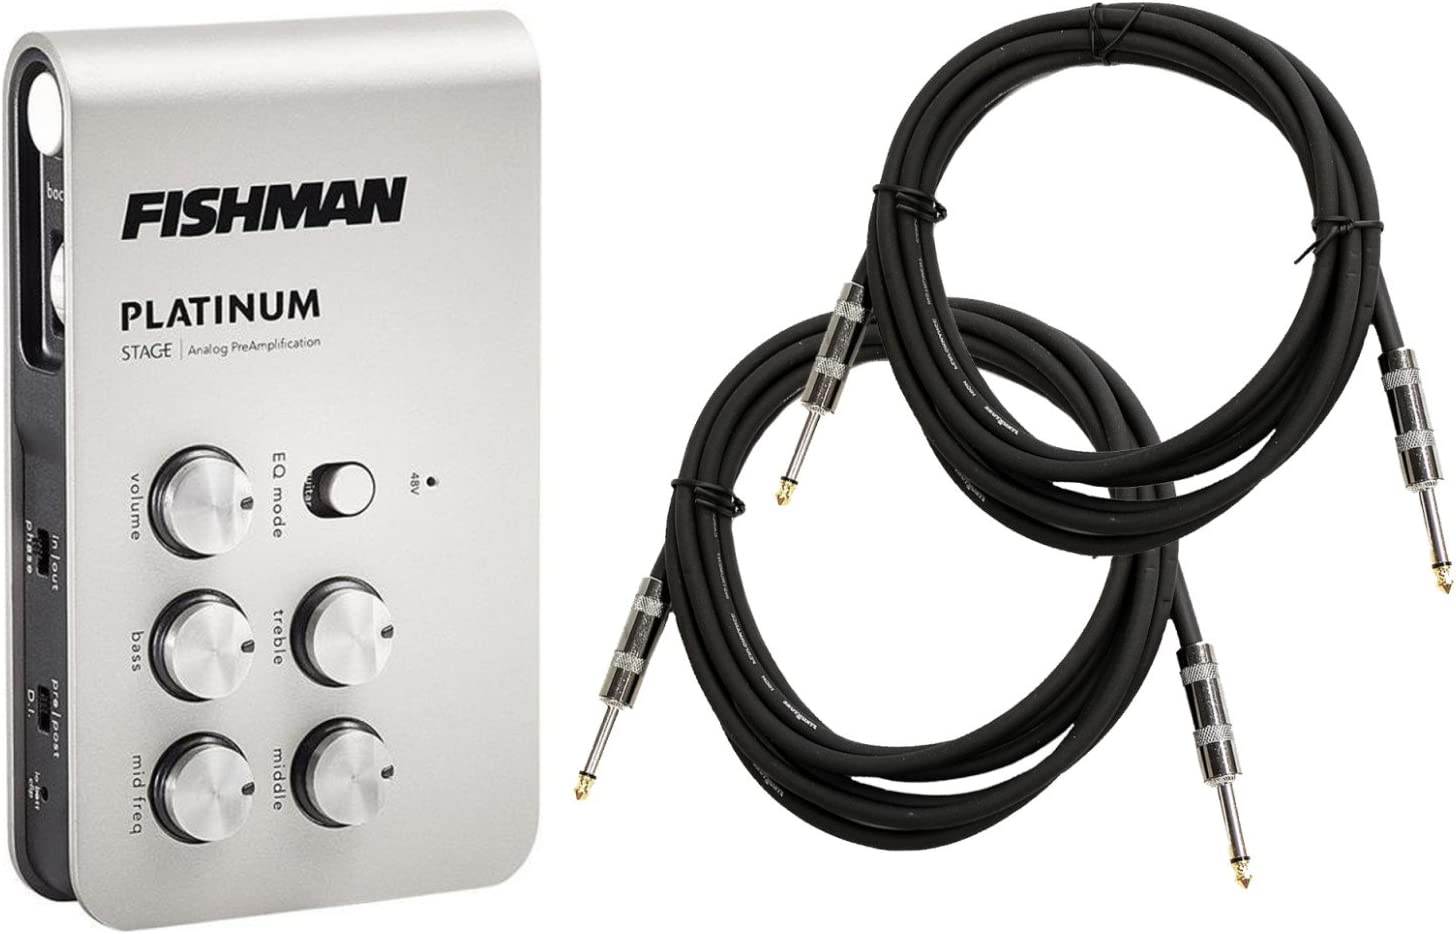 Max 69% OFF Fishman Platinum Stage EQ 2 Cables DI with Beauty products